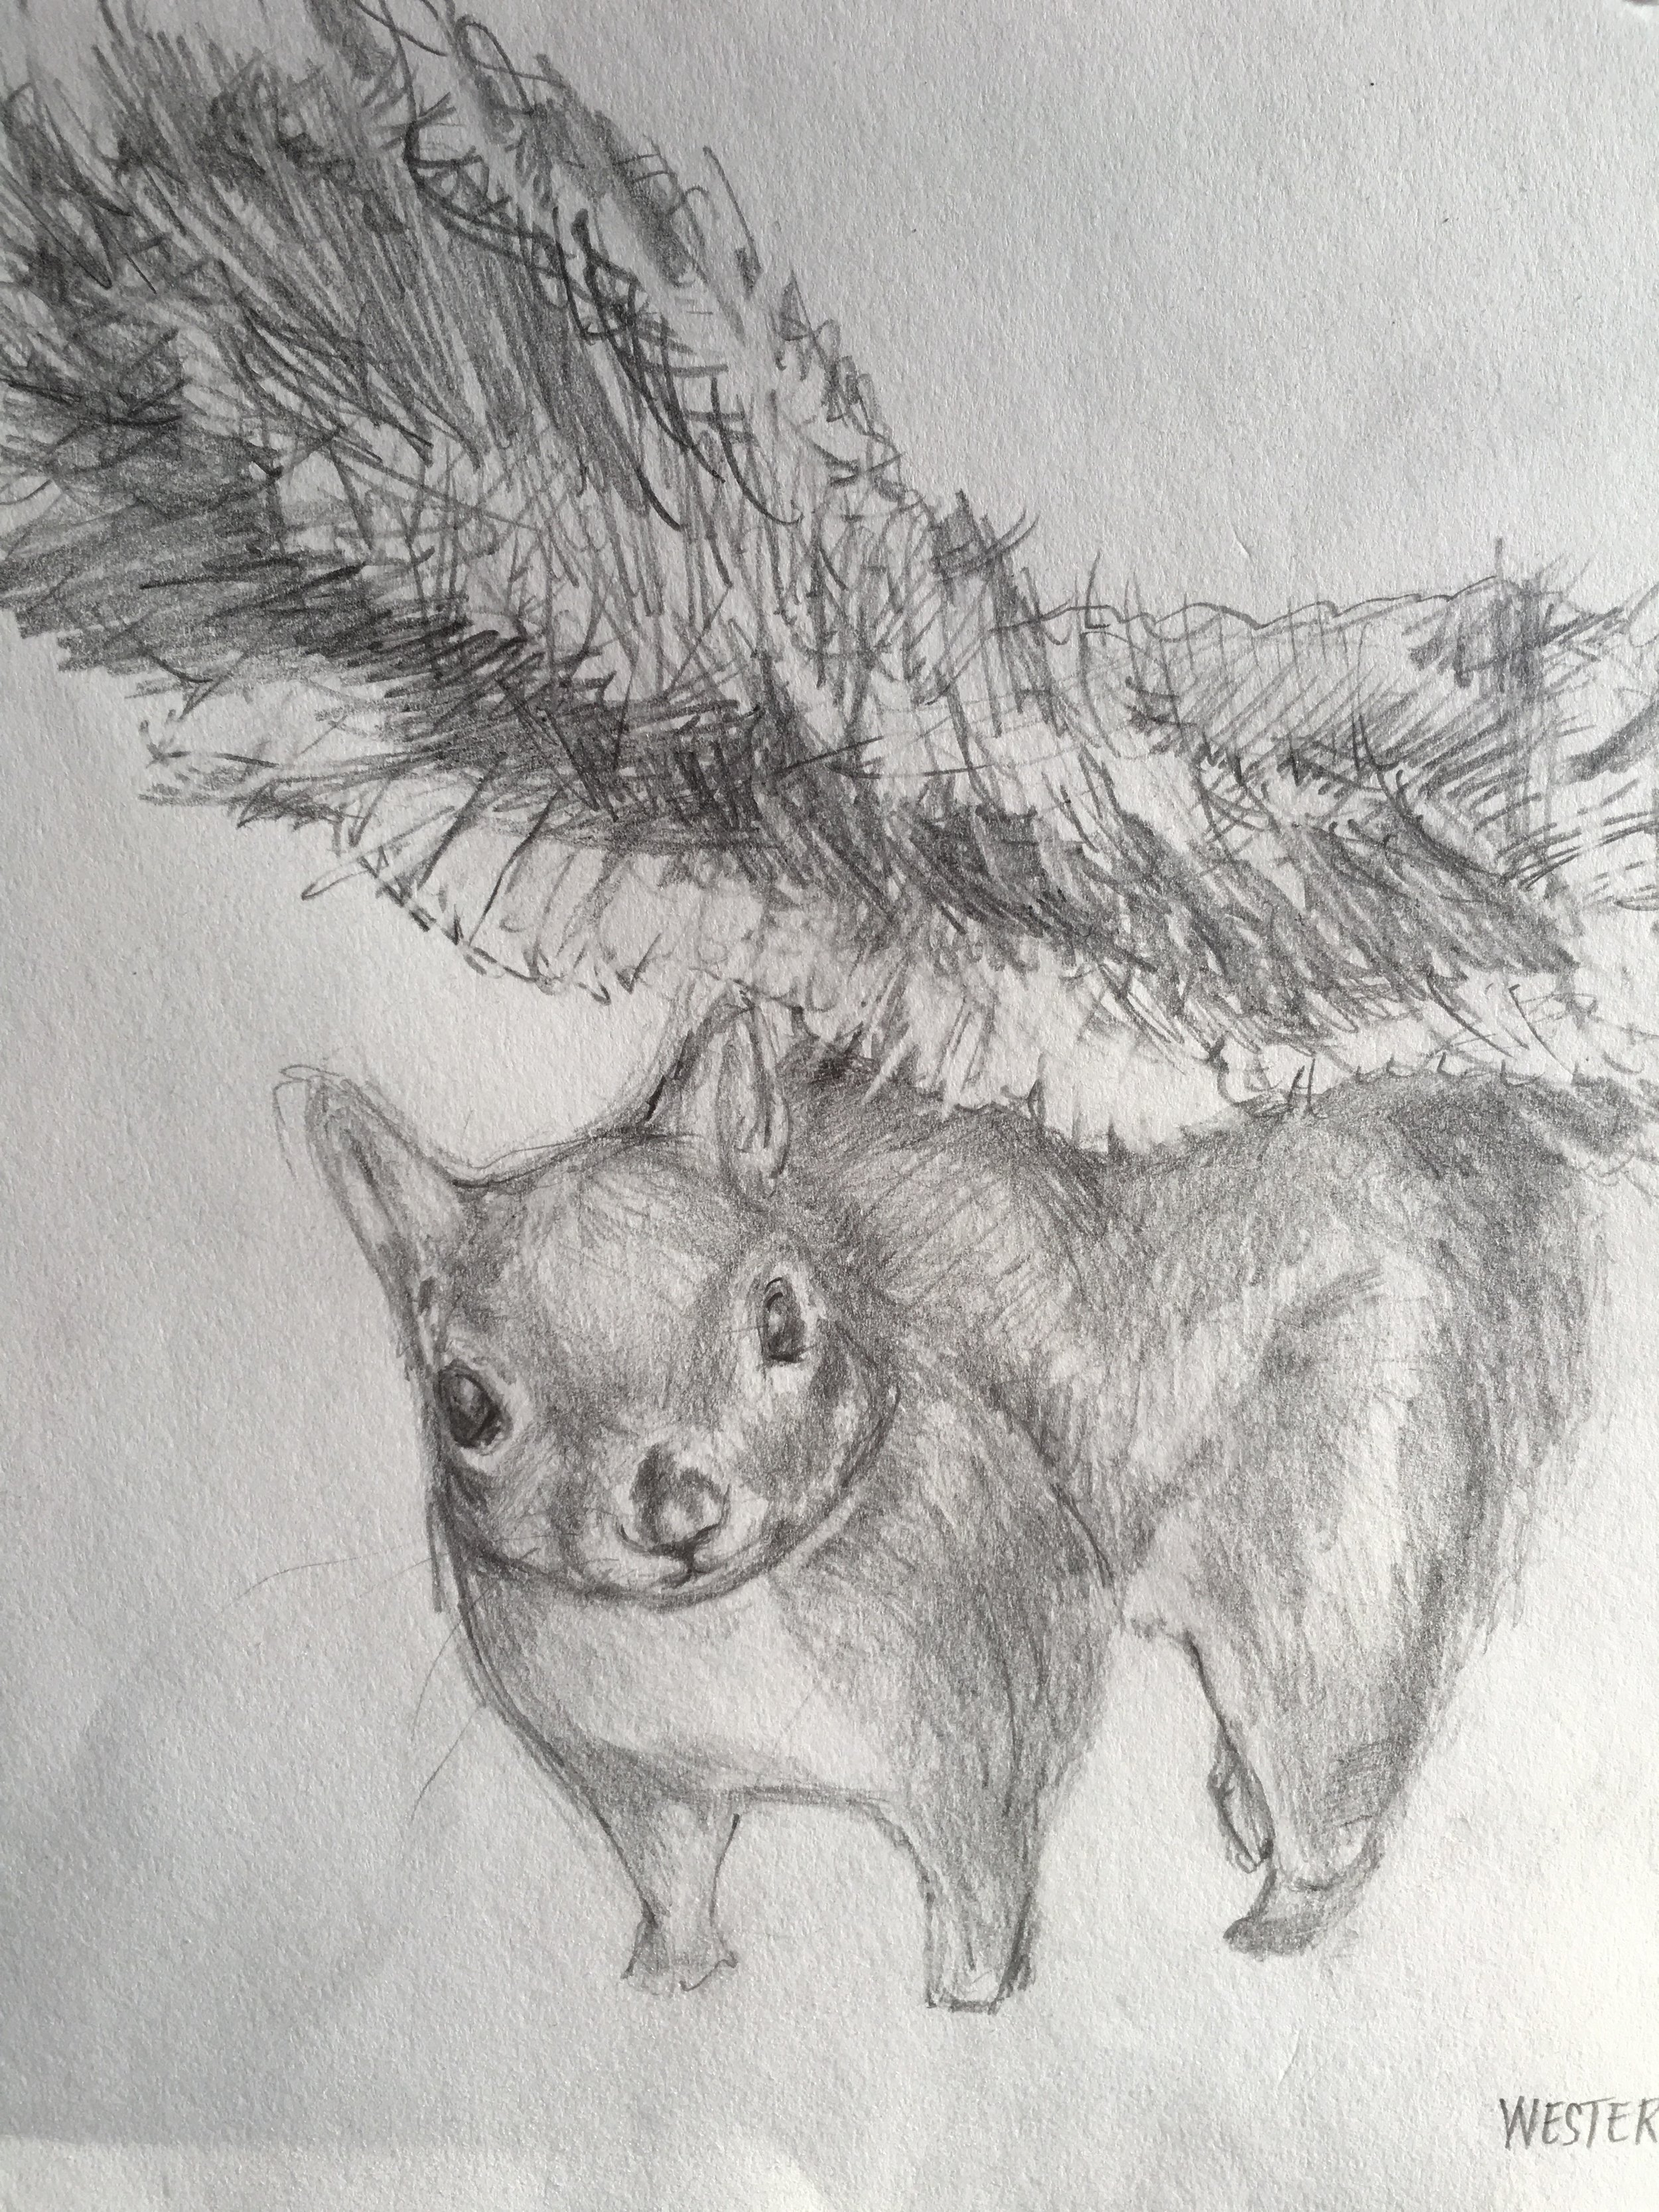 Western Grey Squirrel, 2014. Detail. 9x12 inches. Pencil on acid free Strathmore 400 series paper.